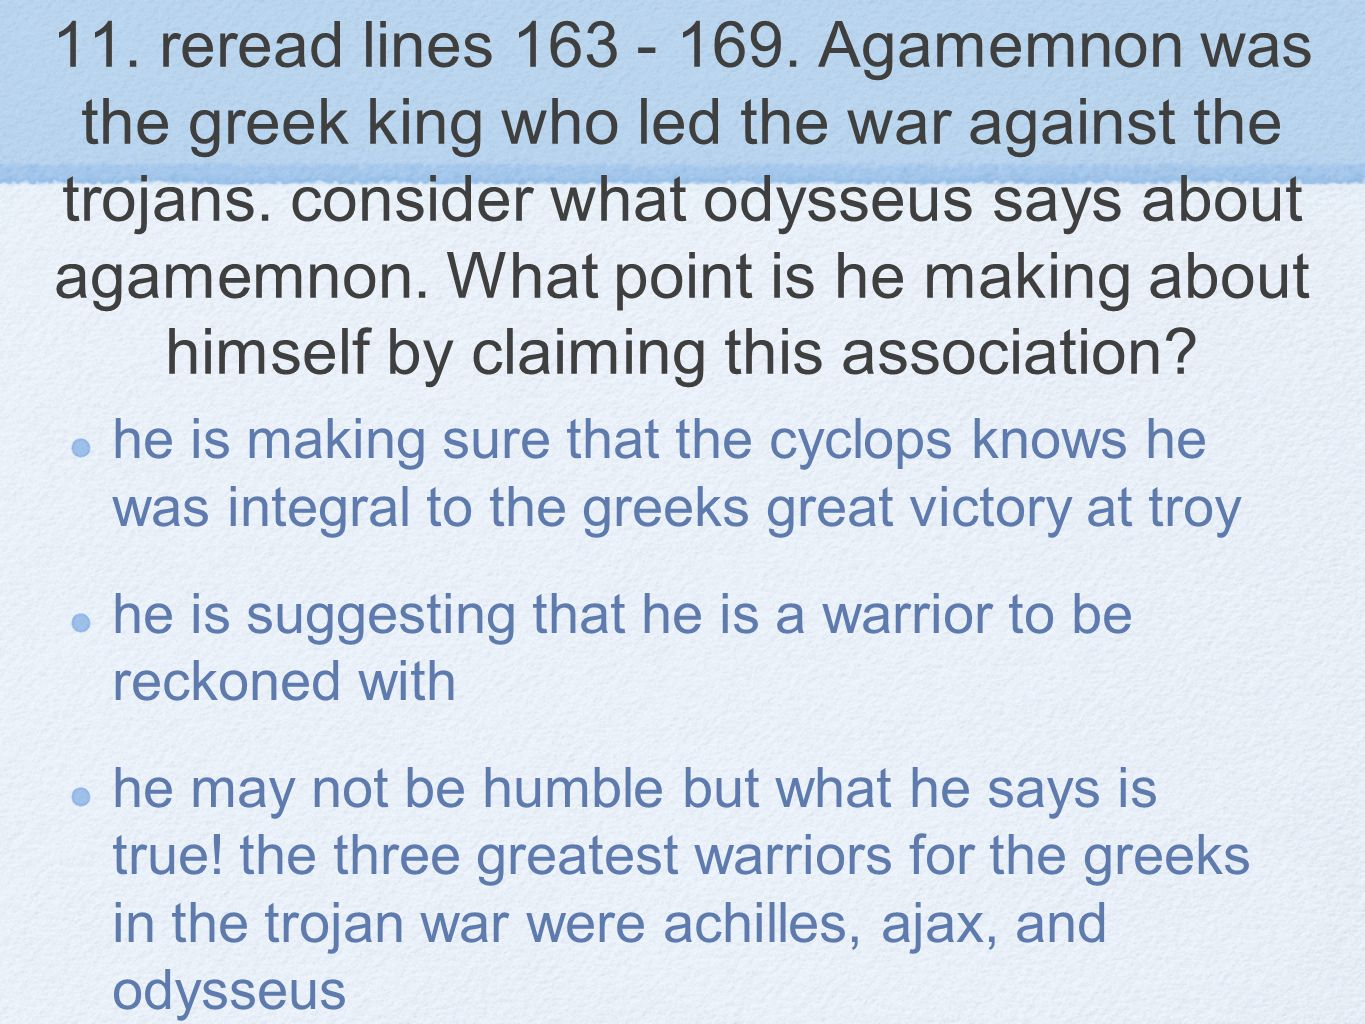 11. reread lines 163 - 169. Agamemnon was the greek king who led the war against the trojans. consider what odysseus says about agamemnon. What point is he making about himself by claiming this association